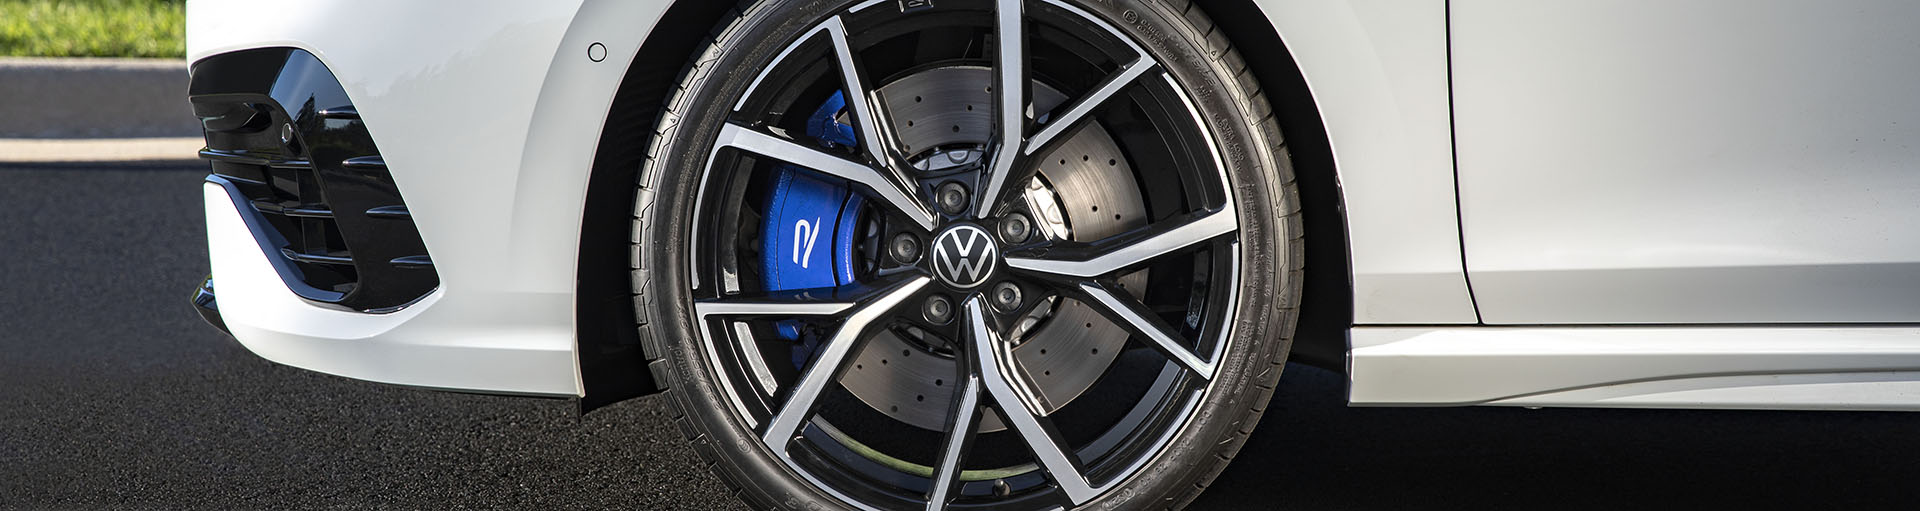 Volkswagen Tire Center